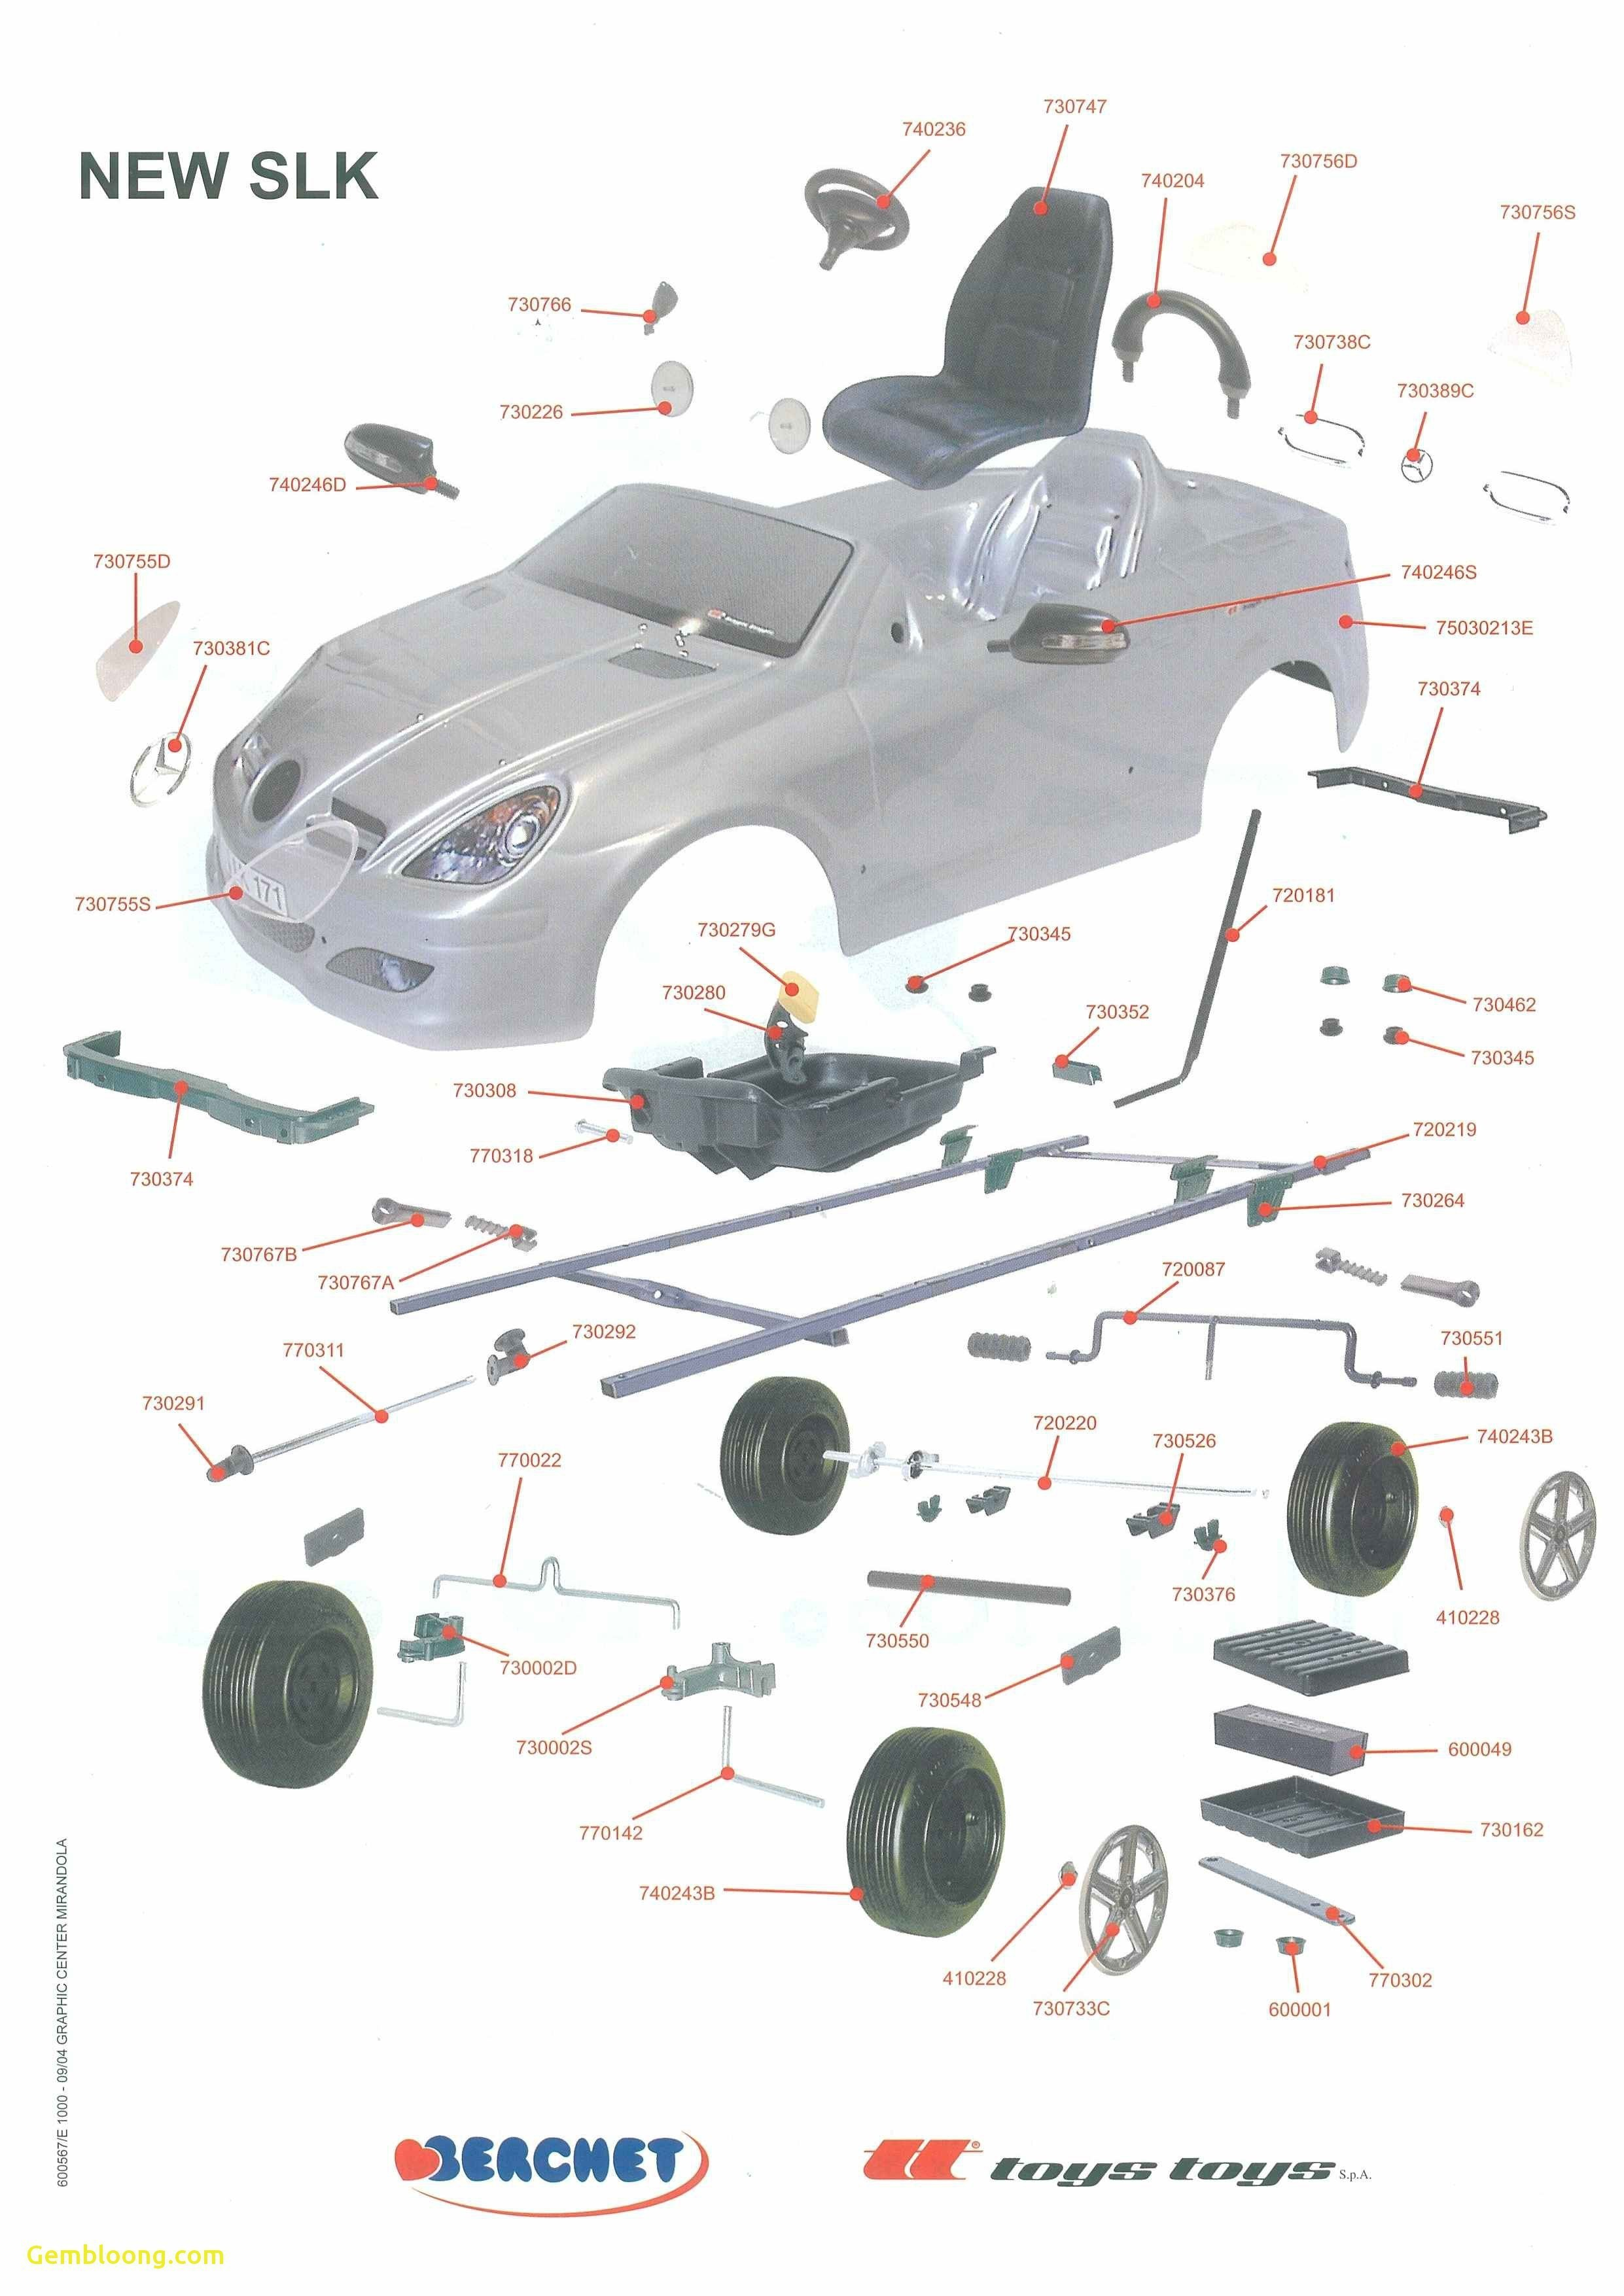 Parts Of A Car Diagram Awesome Car Free Body Diagram Of Parts Of A Car Diagram